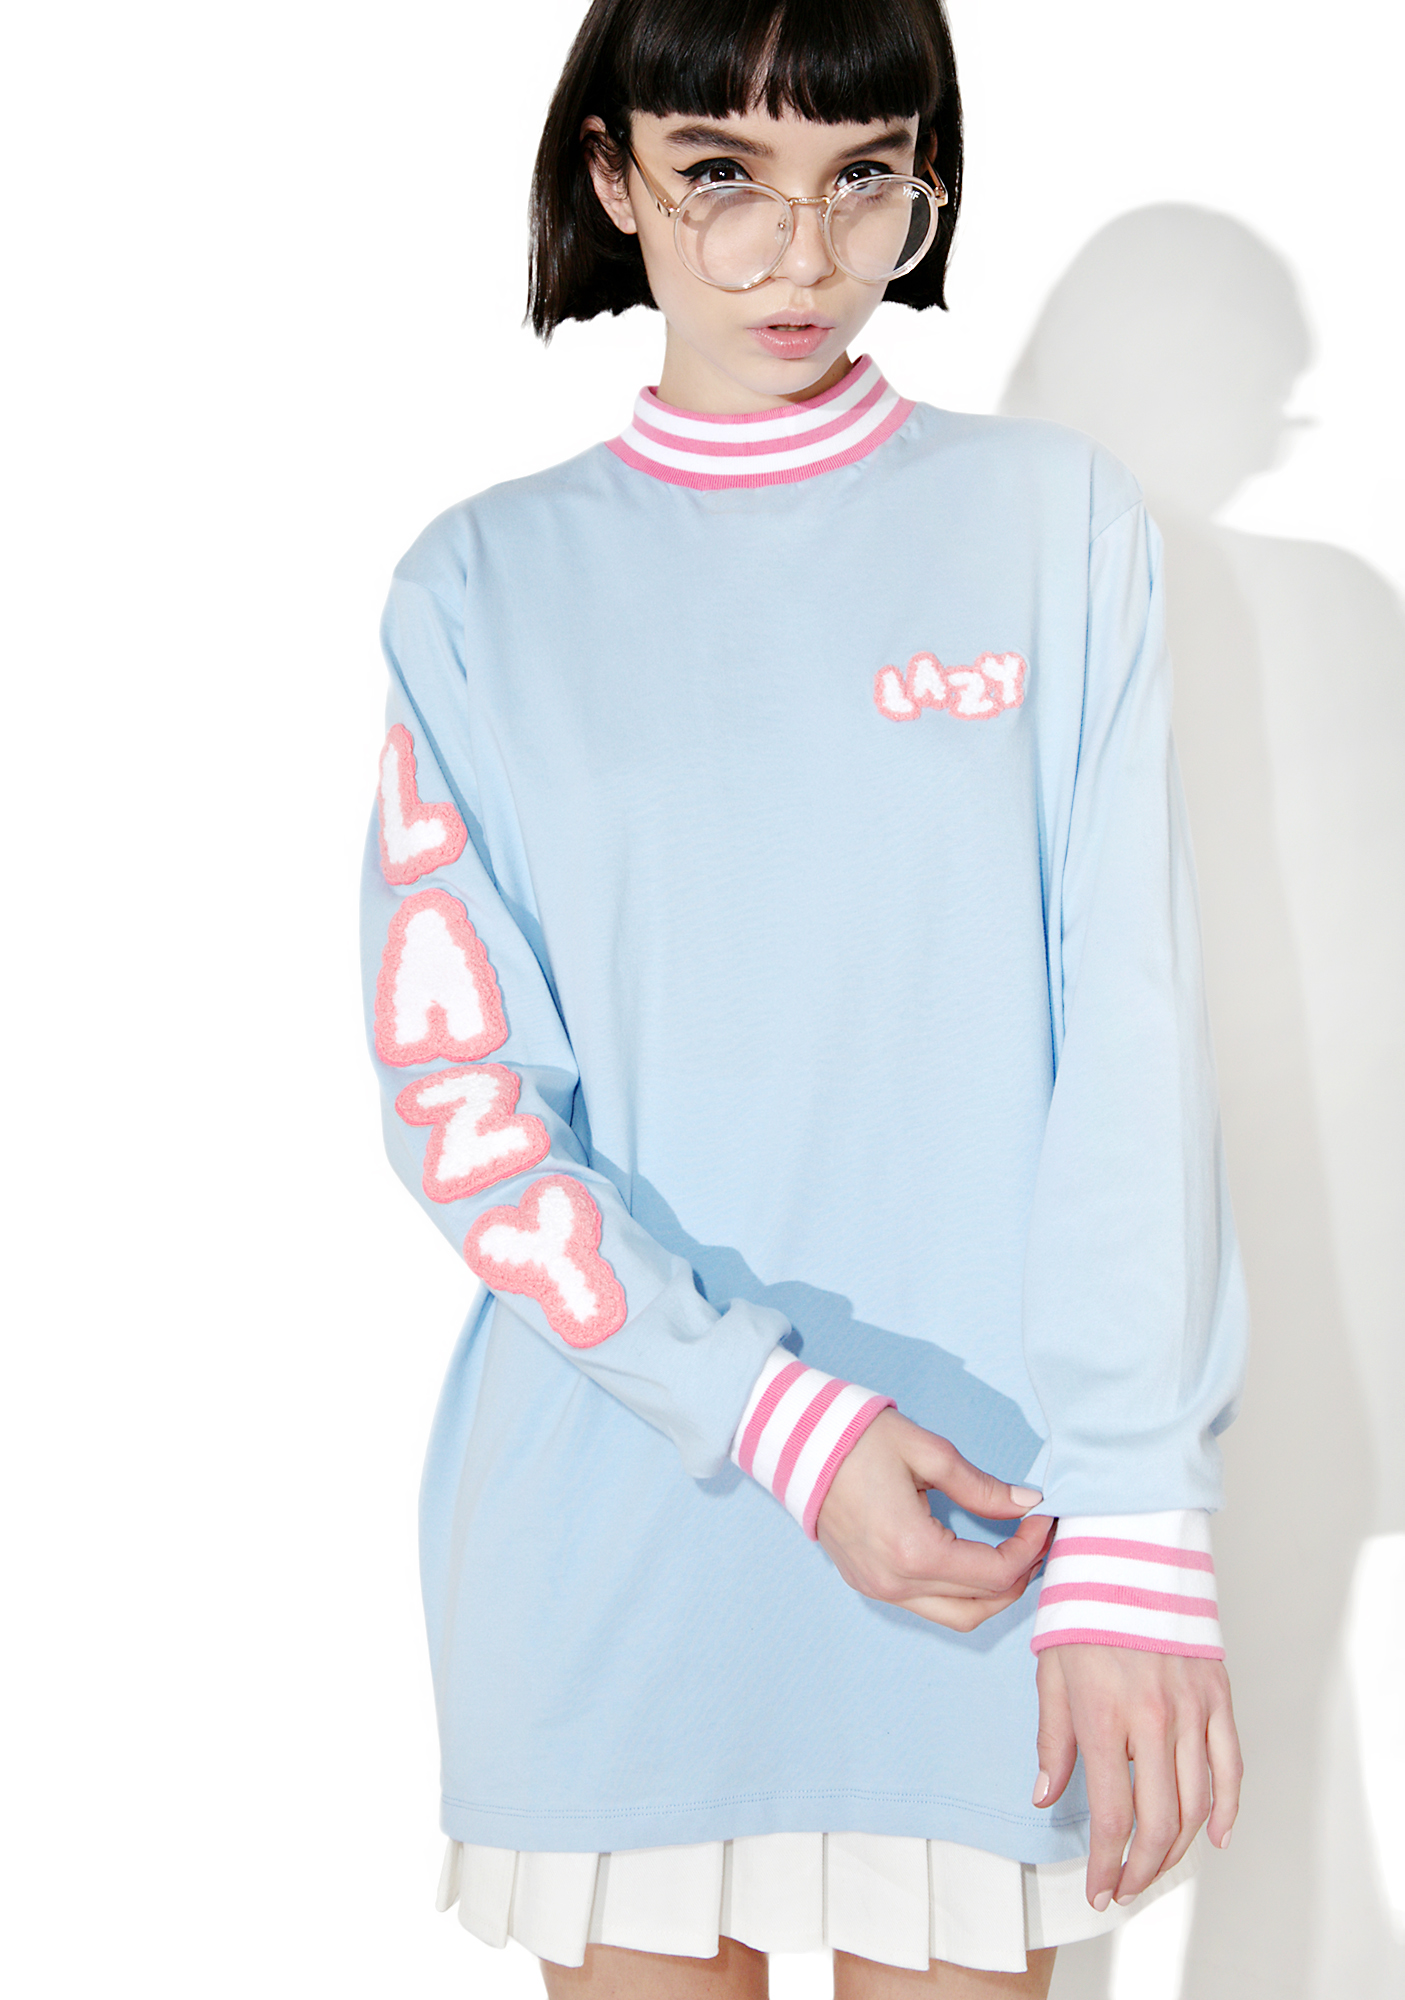 Lazy Oaf Lazy Letters Long Sleeve Tee